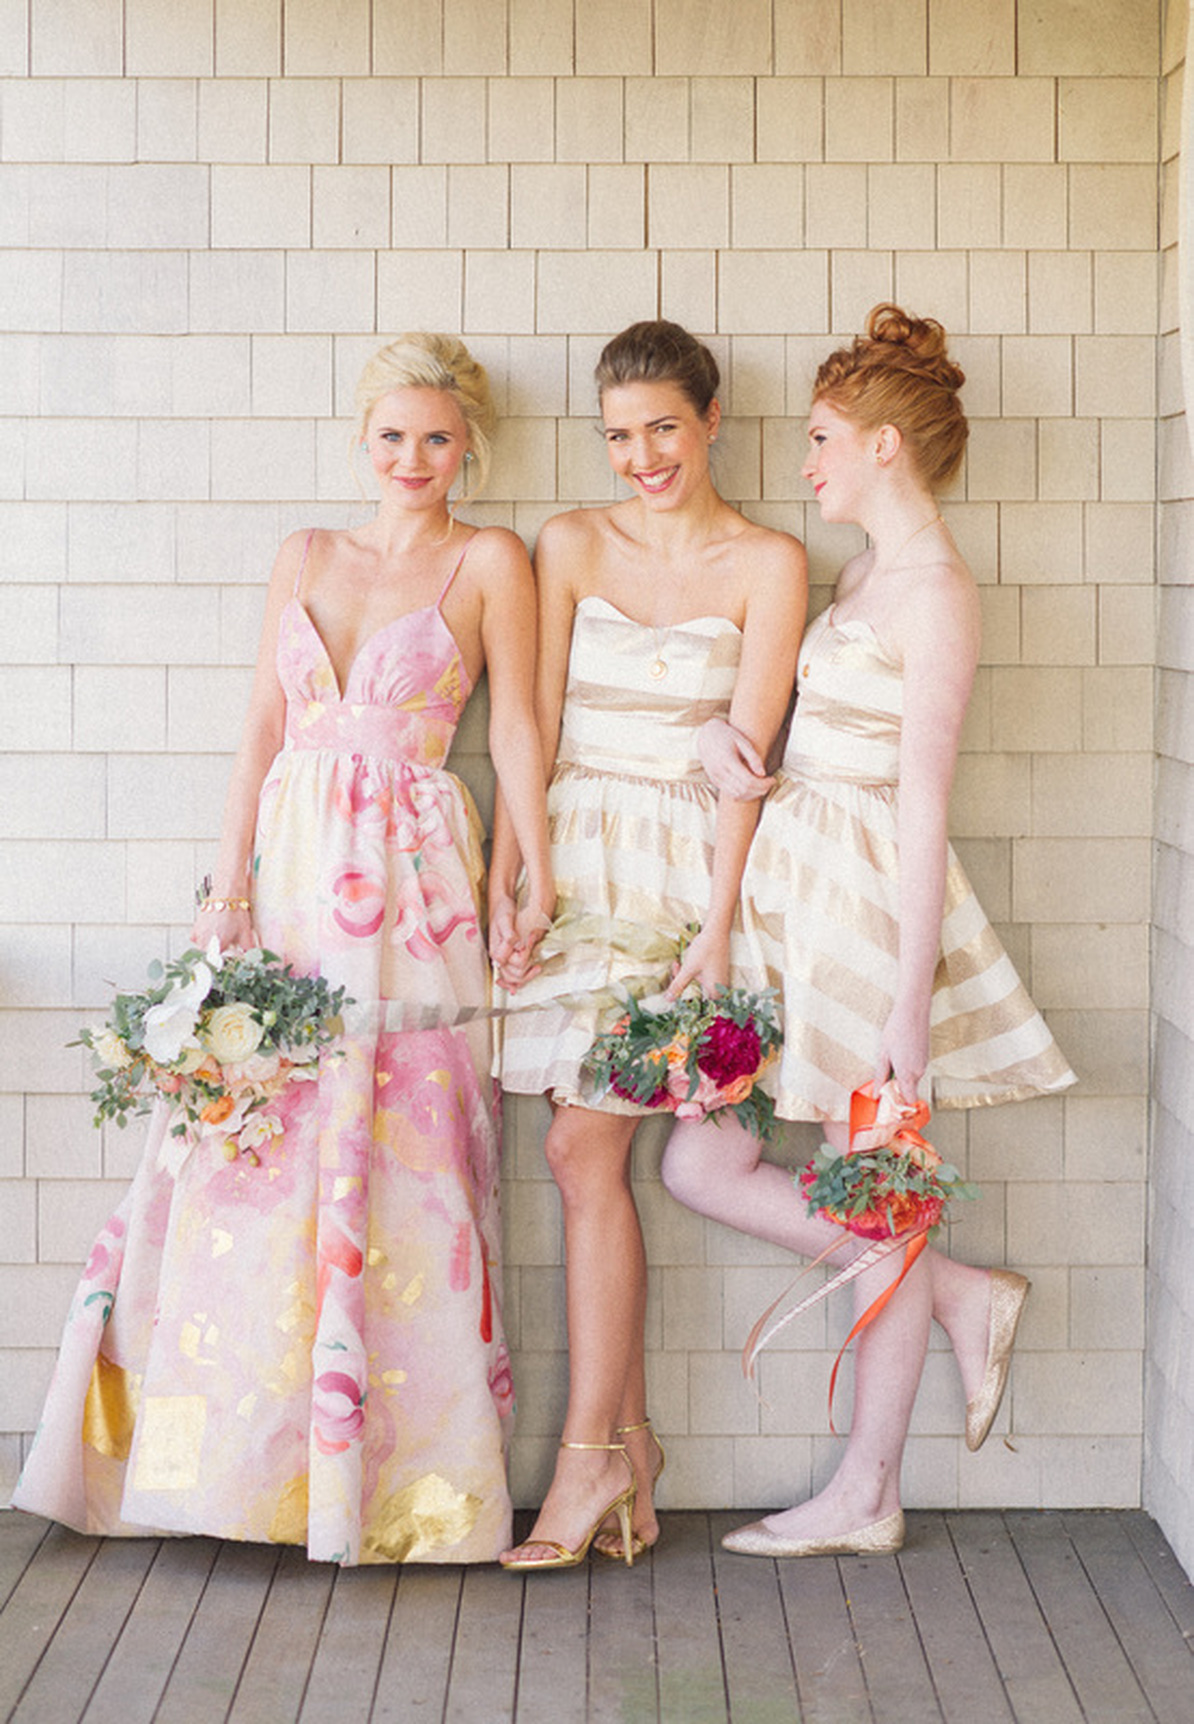 Floral Wedding Dress and Striped Bridesmaid Dresses